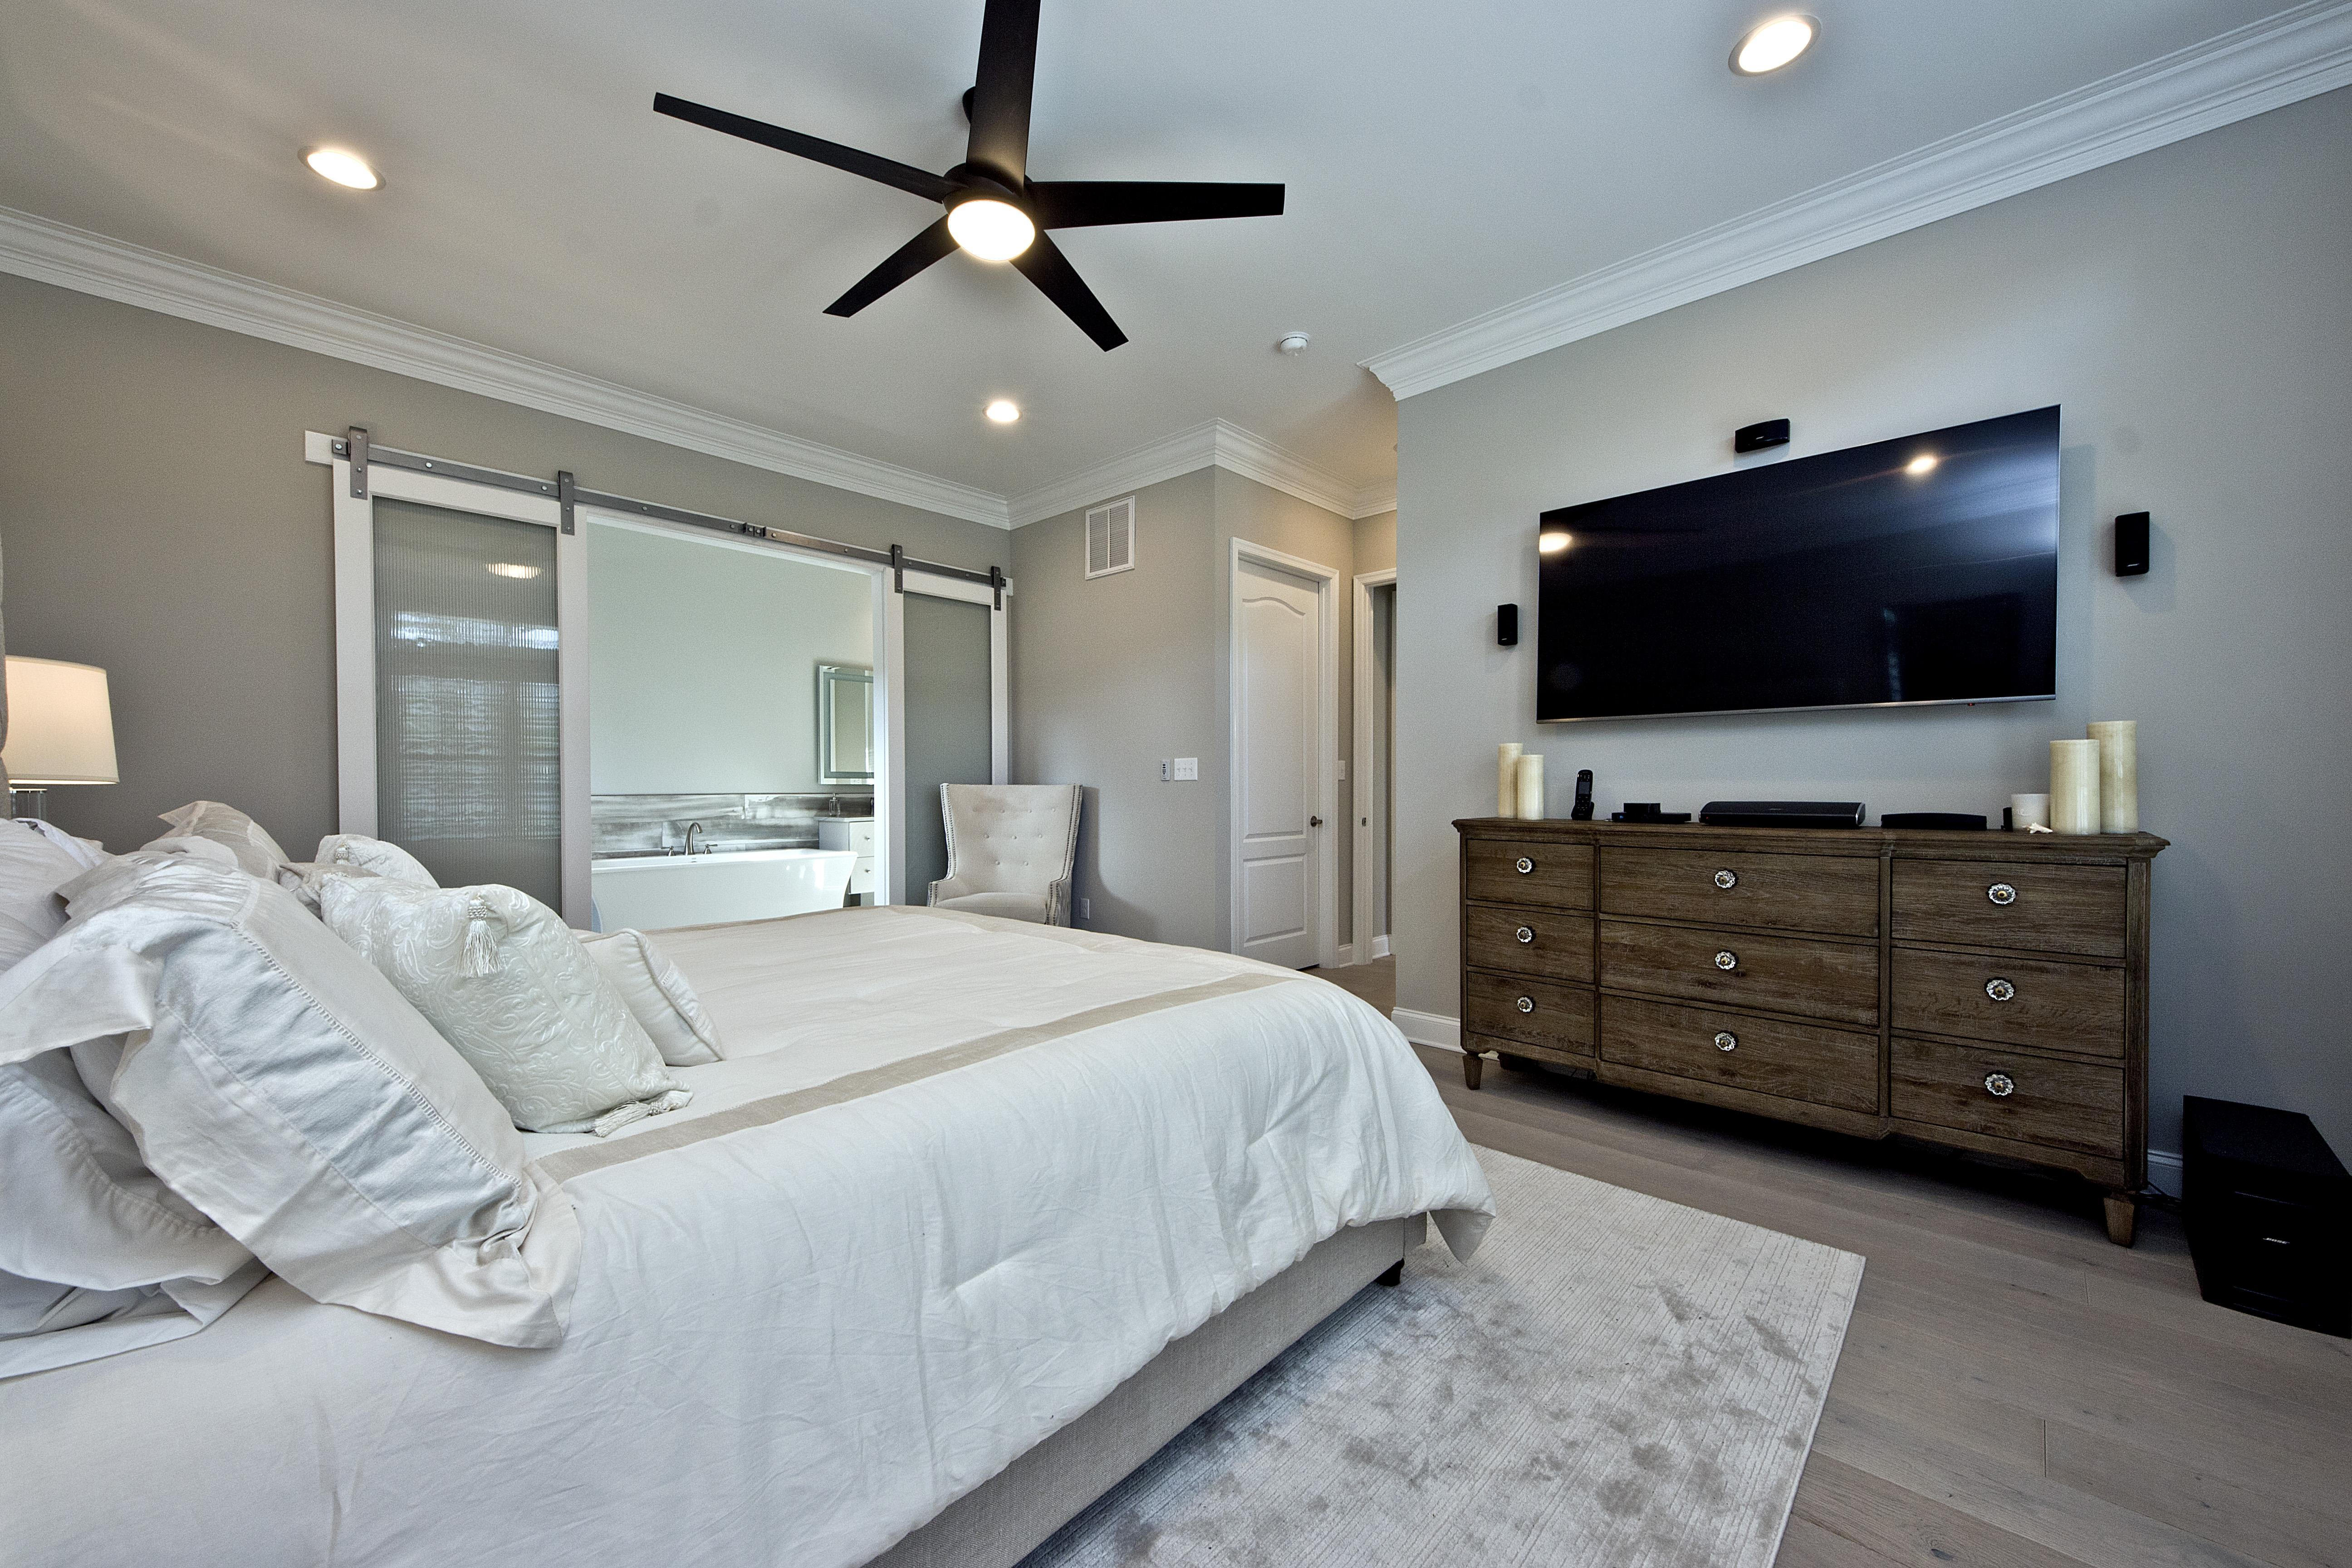 Bedroom featured in The Georgetown By Ashburn Homes in Dover, DE